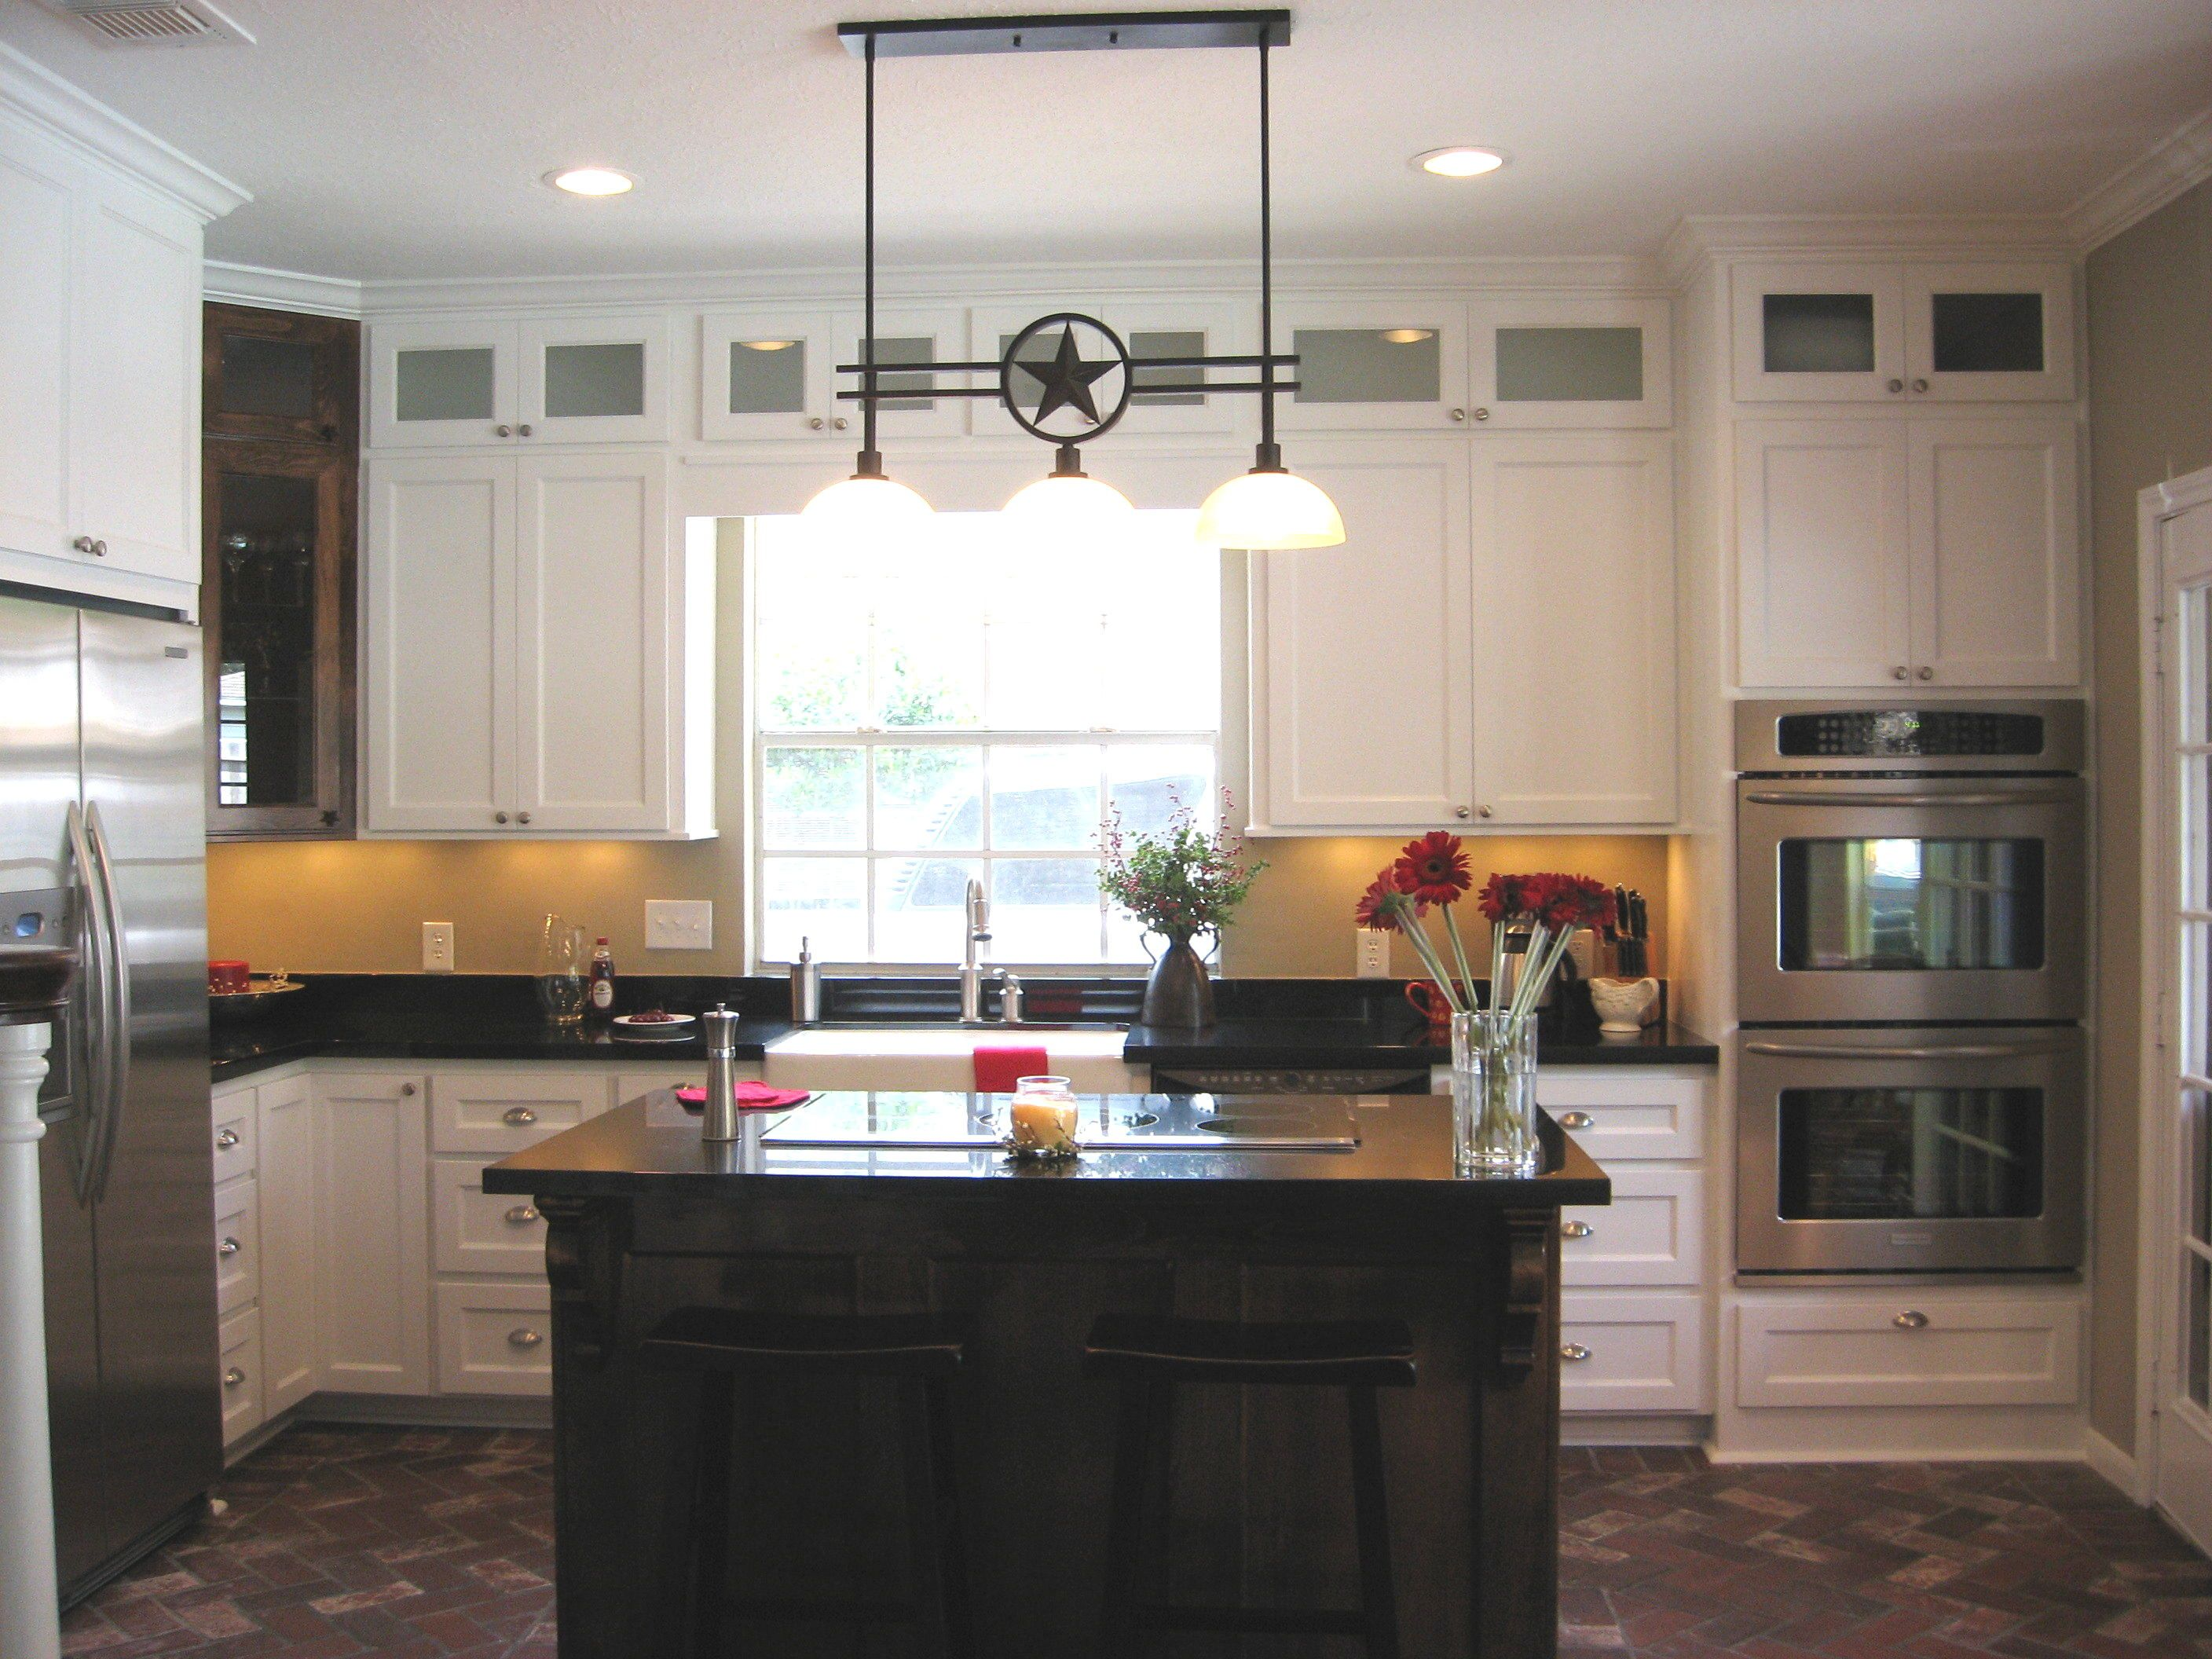 texas lone star kitchen with custom cabinets stacked upper cabinets with glass doors a on kitchen cabinets with glass doors on top id=69105